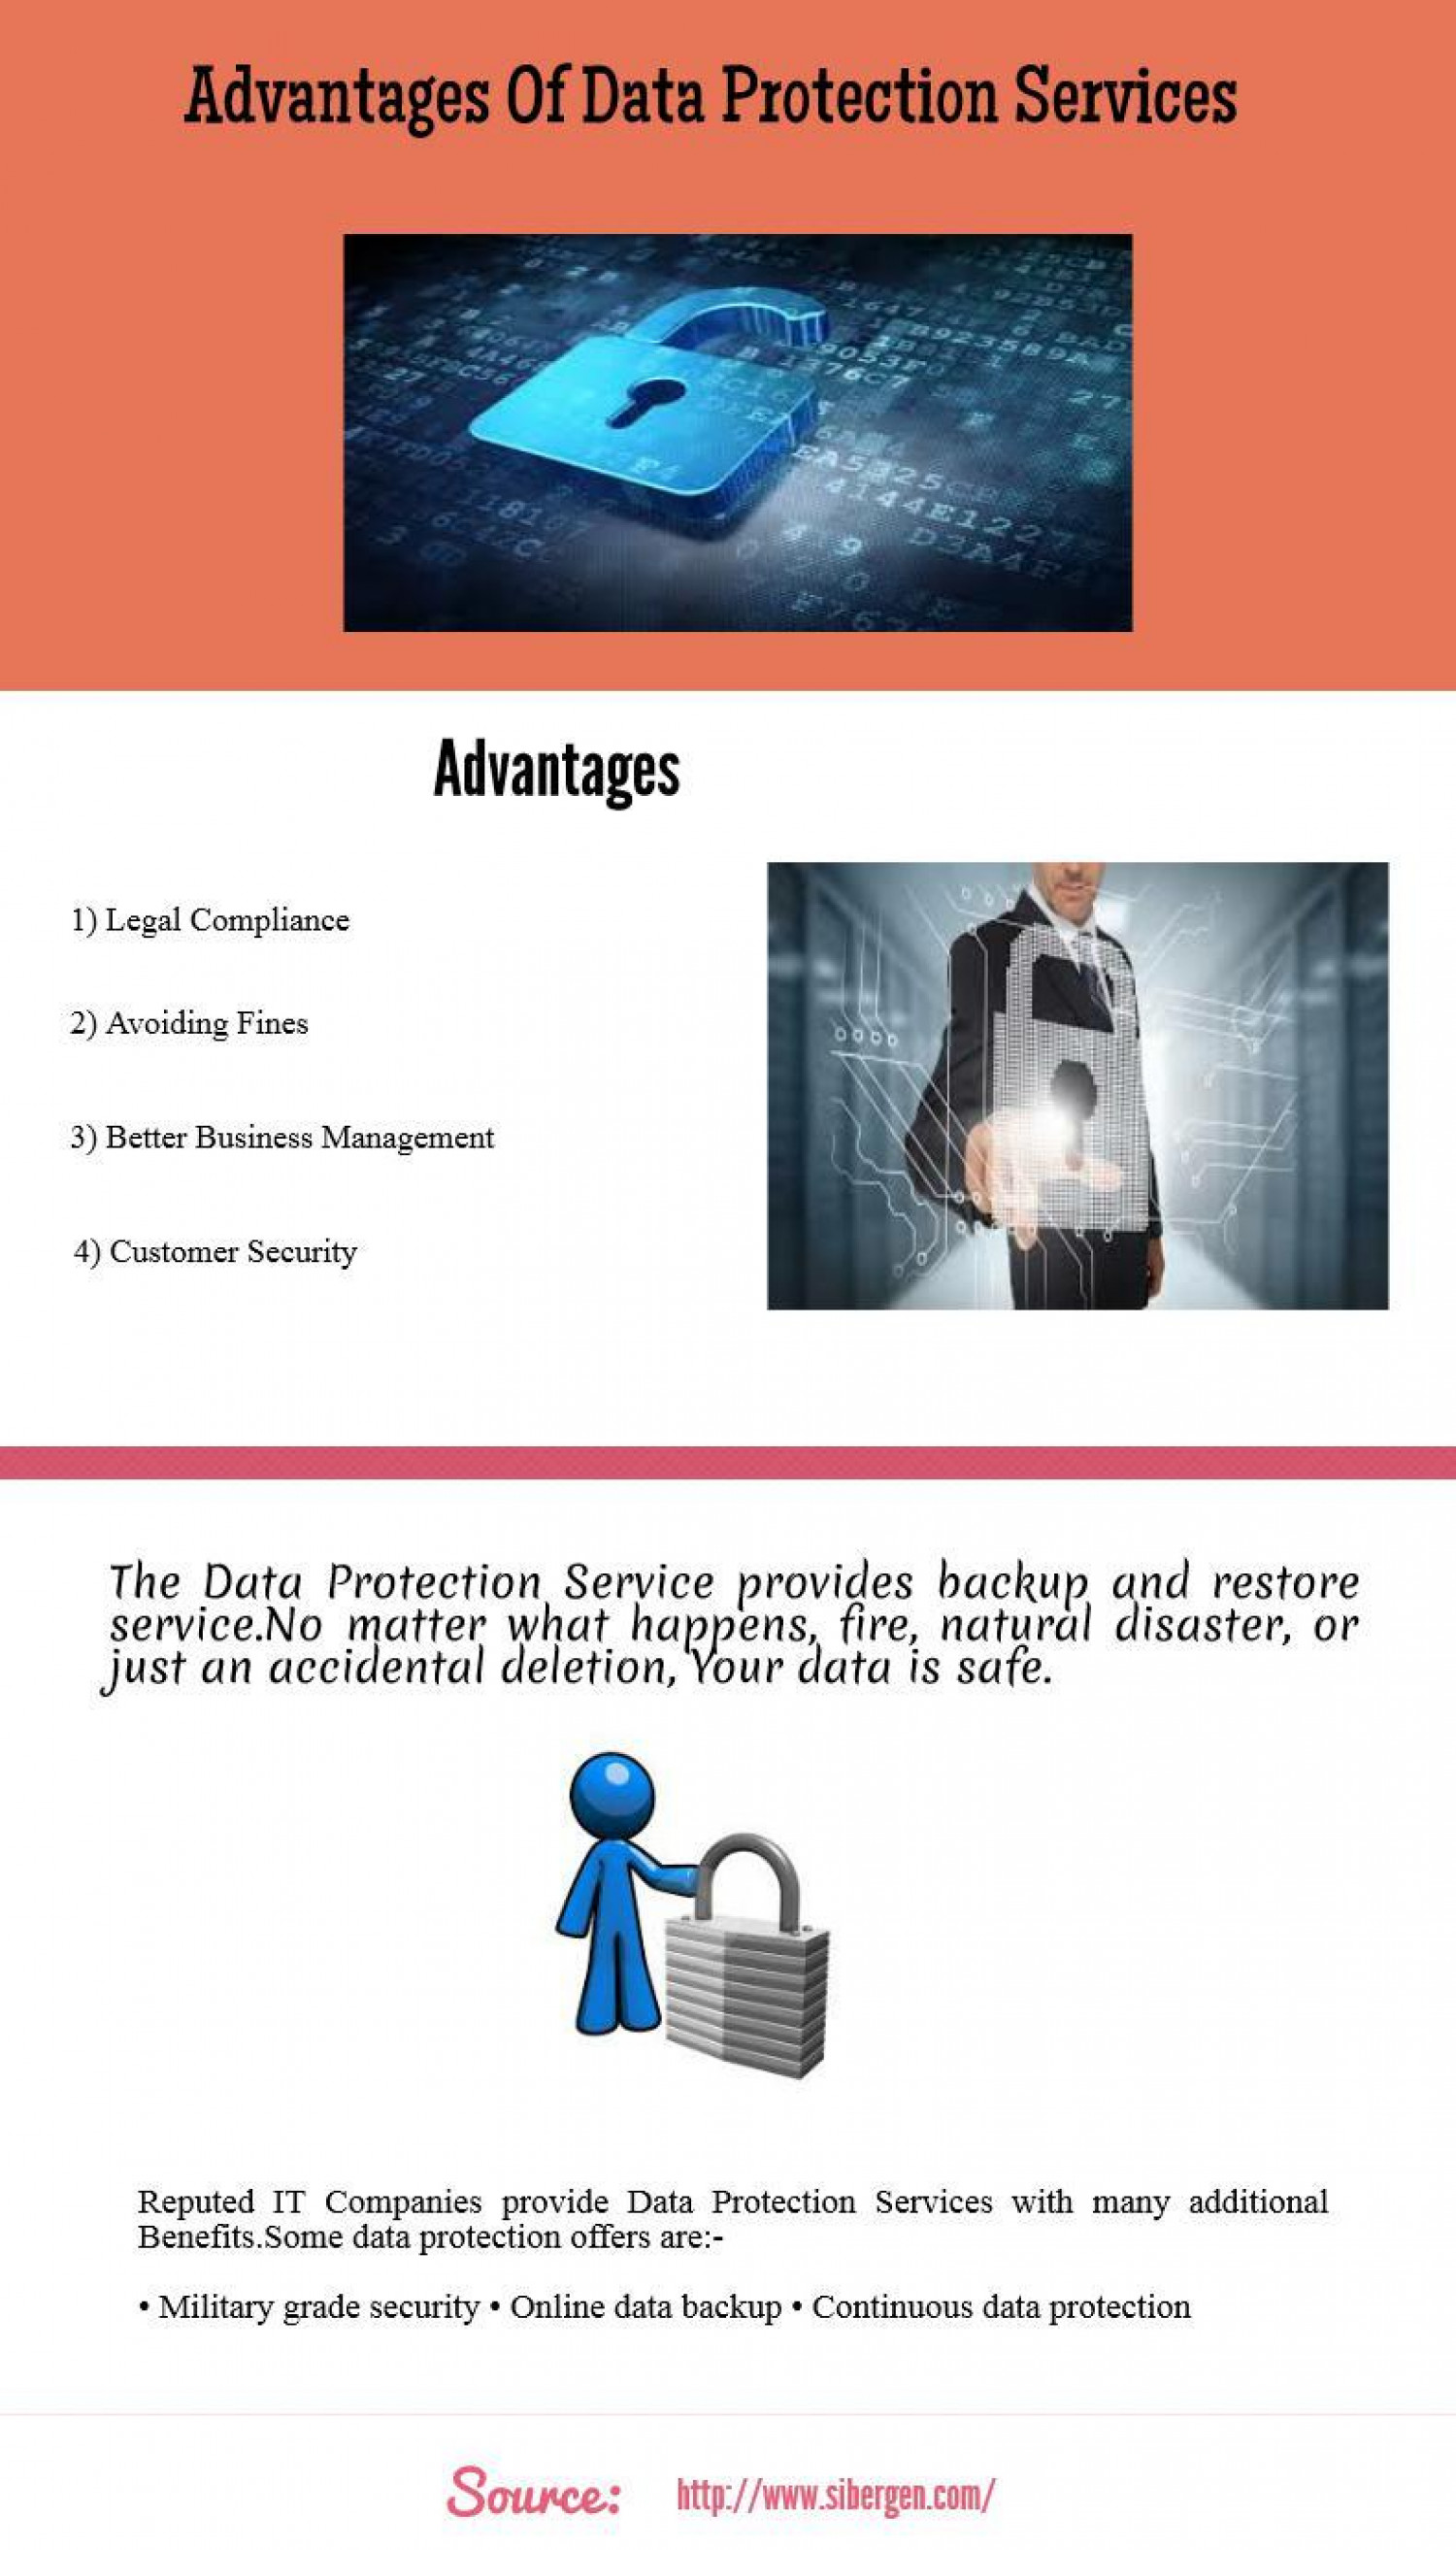 Advantages of Data Protection Services